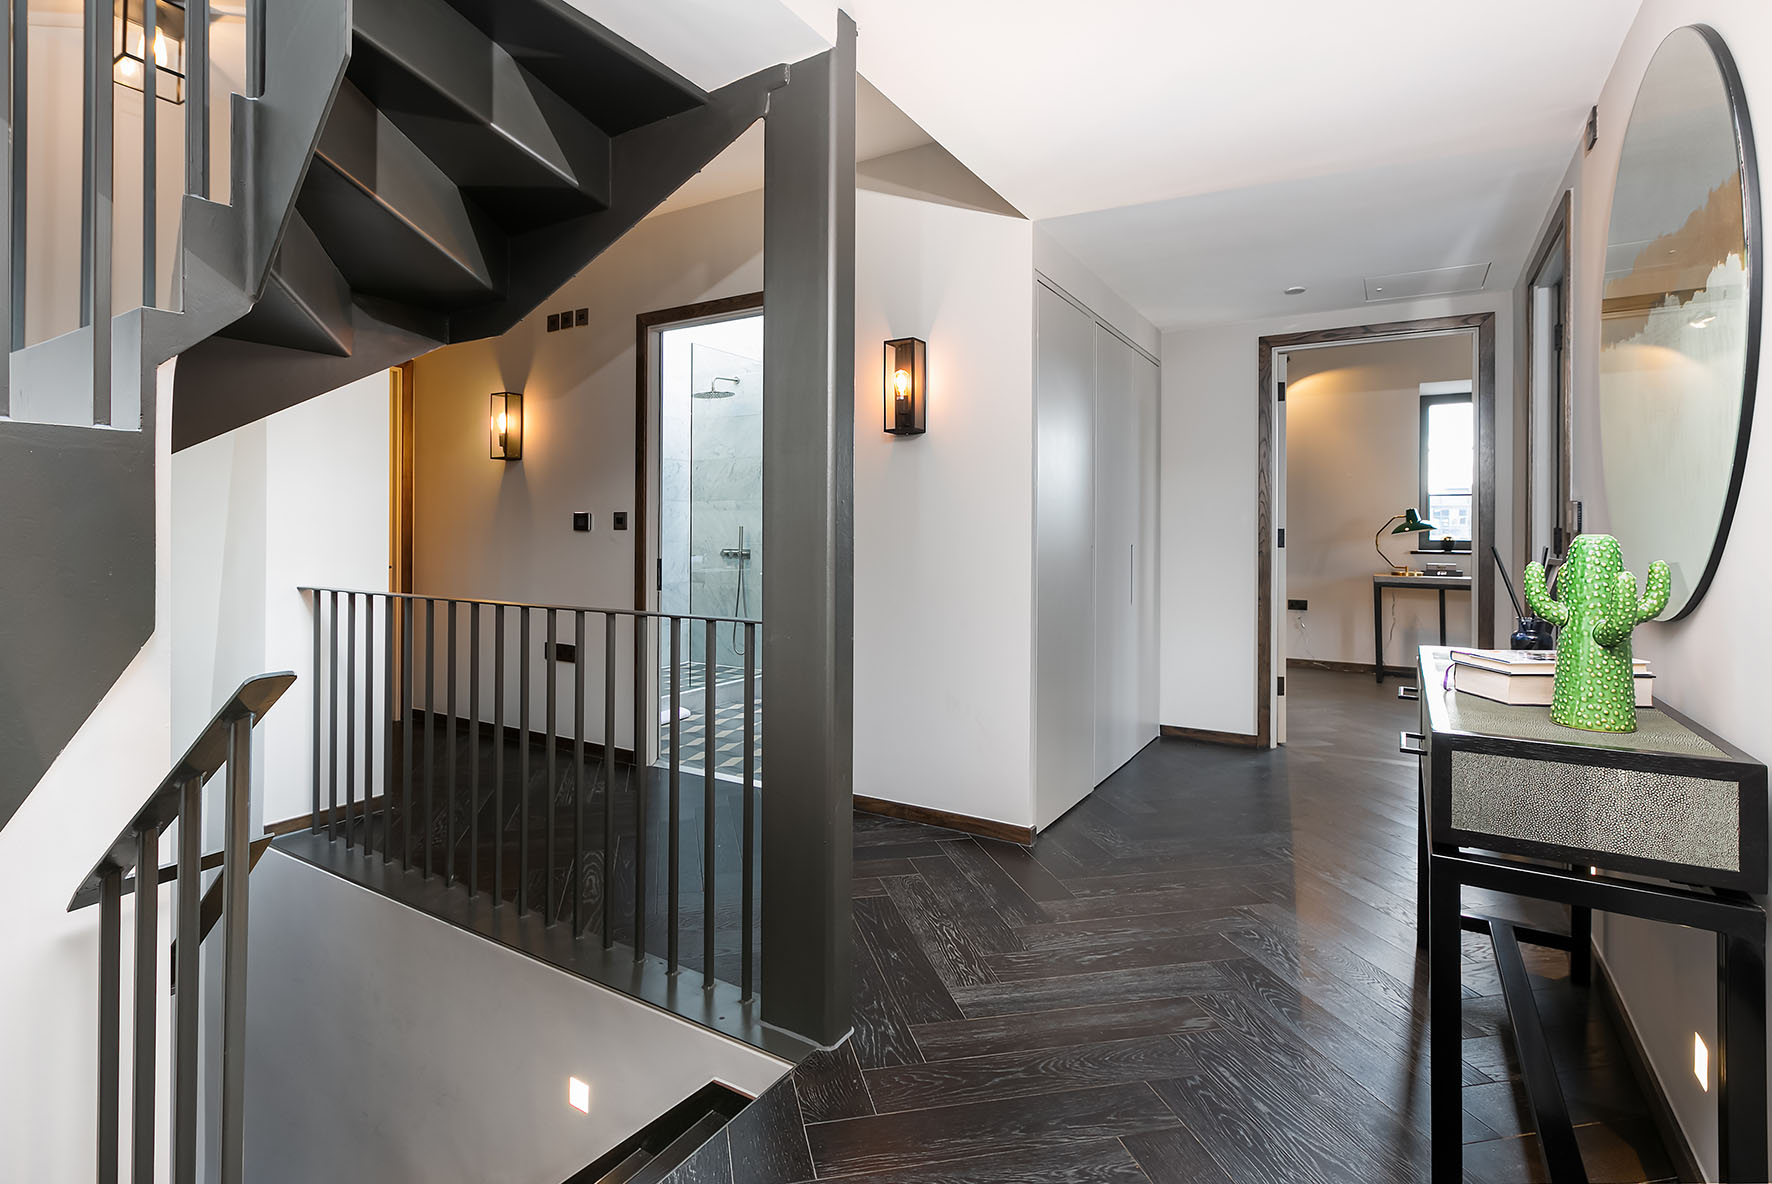 Lovelydays luxury service apartment rental - London - Soho - Great Marlborough St. IX - Lovelysuite - 2 bedrooms - 2 bathrooms - Hallway - 883eb391285b - Lovelydays